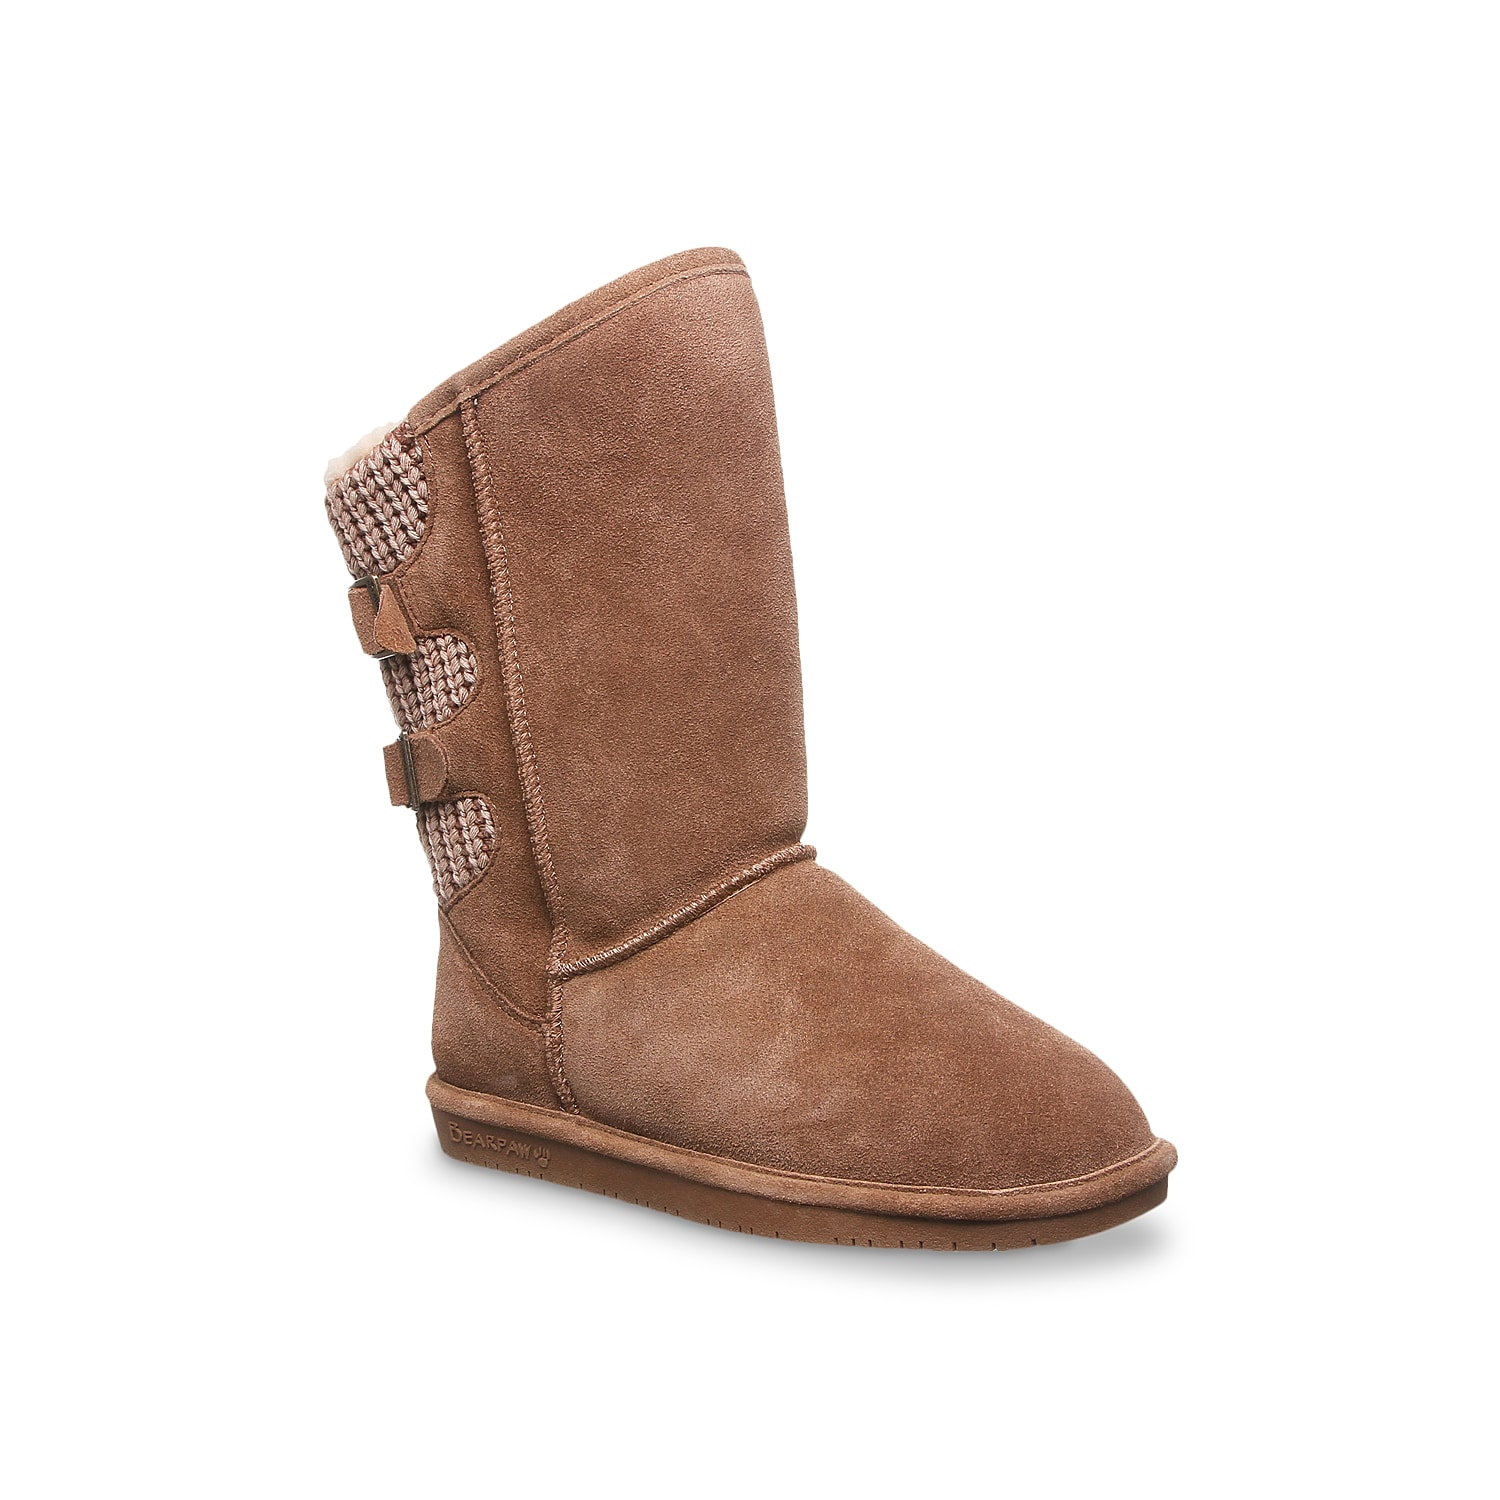 Enjoy the vibe and warmth that the Bearpaw Boshie boot has to offer. Premium suede with a washed finish is backed by wool-blend lining and shearling footbed for improved comfort.Click here for Boot Measuring Guide.